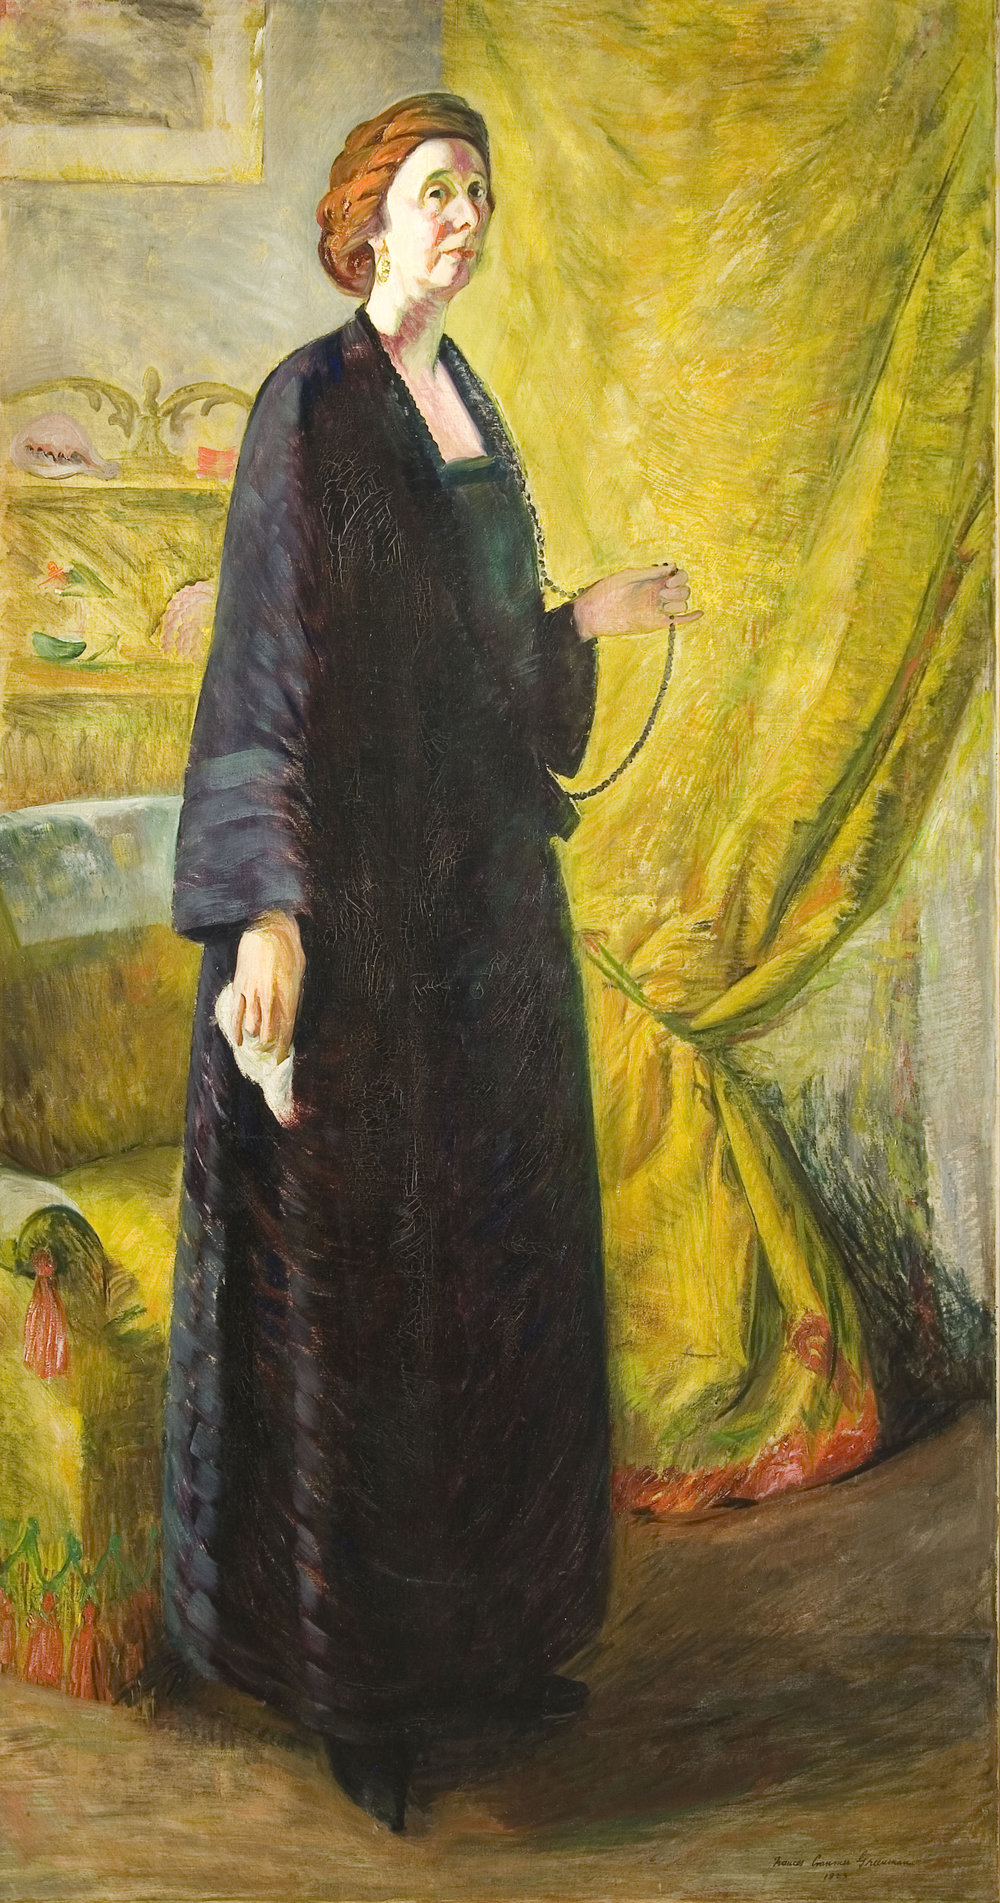 Frances Cranmer Greenman, Portrait of Clara Mairs, 1923. oil on canvas. Gift of Mr. and Mrs. Patrick Butler. Collection of Minnesota Museum of American Art.